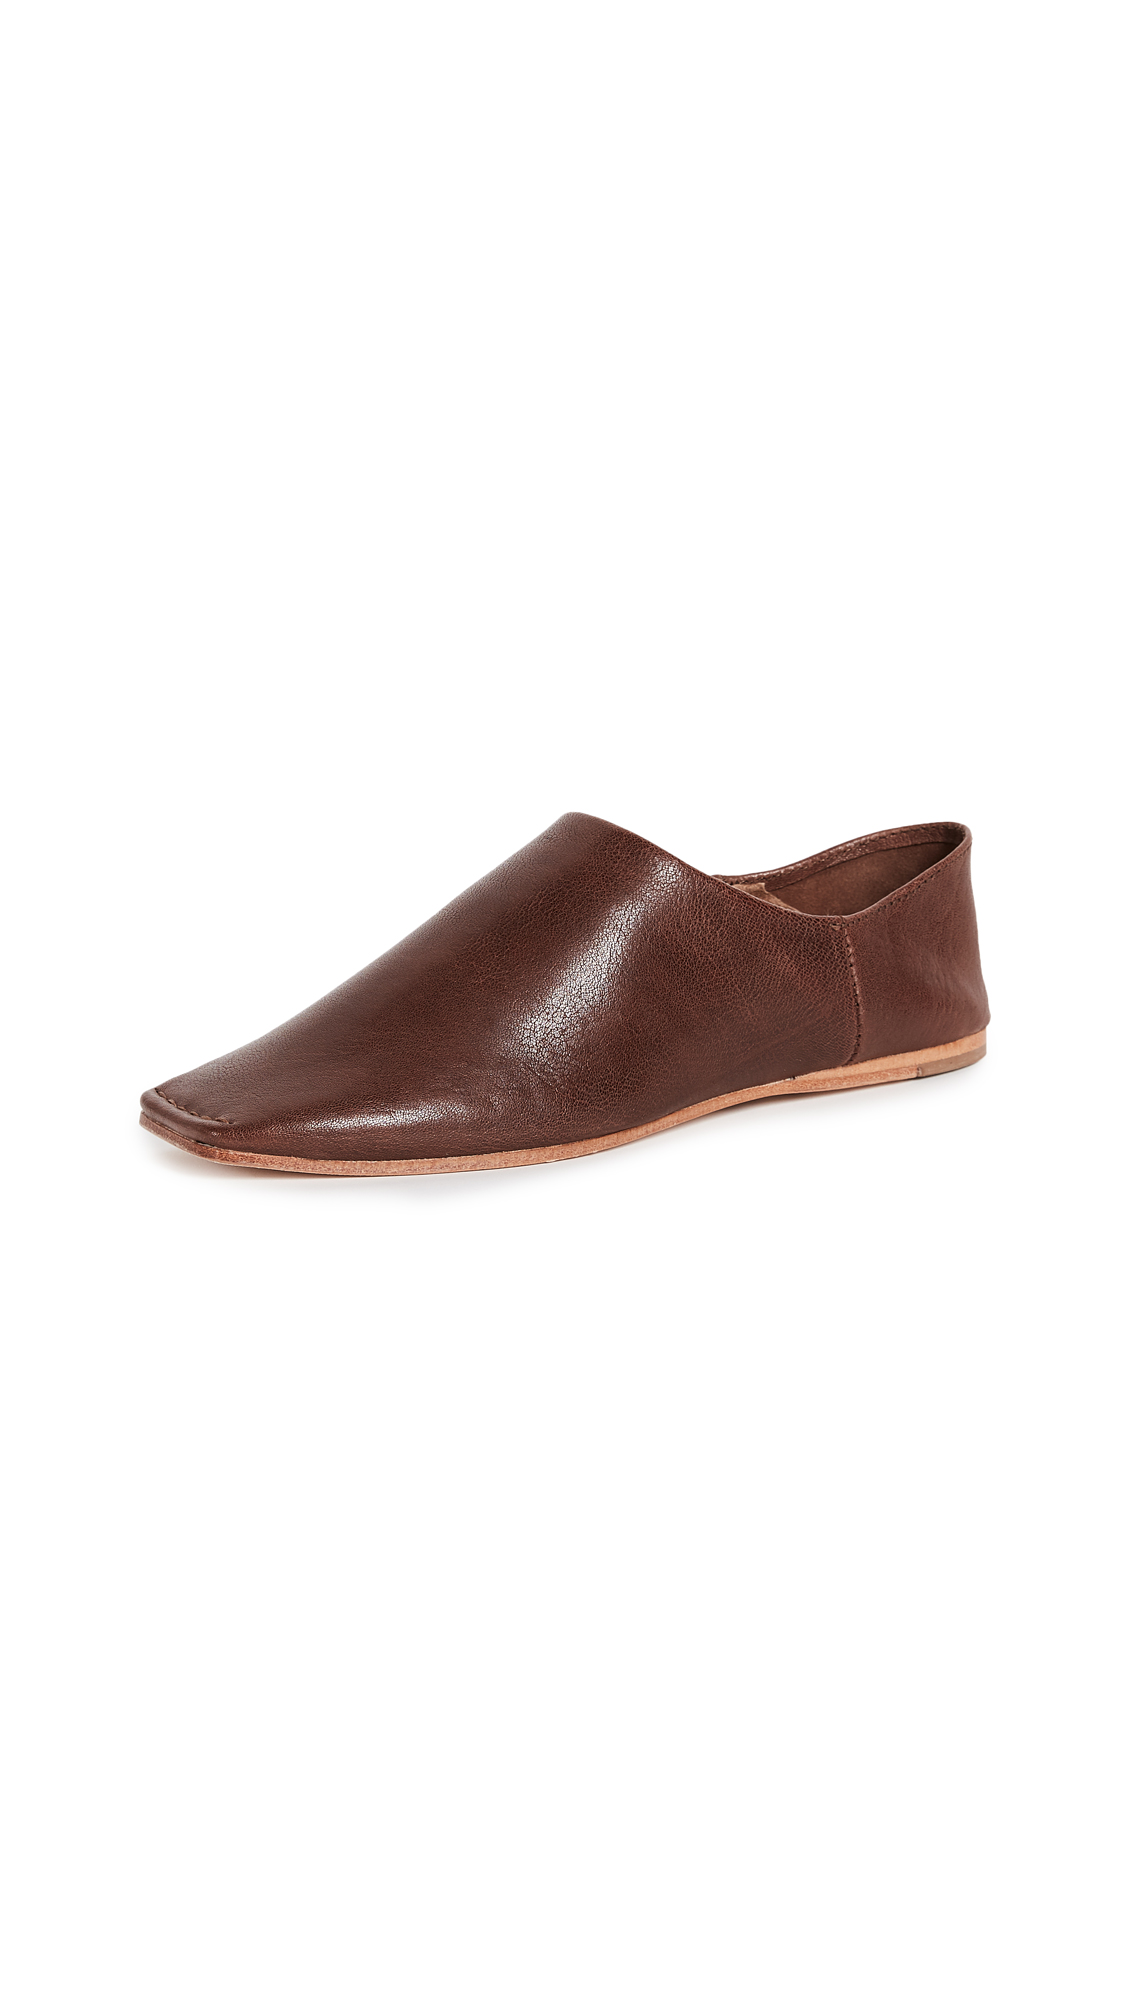 Jeffrey Campbell Zoltar Flats - Brown